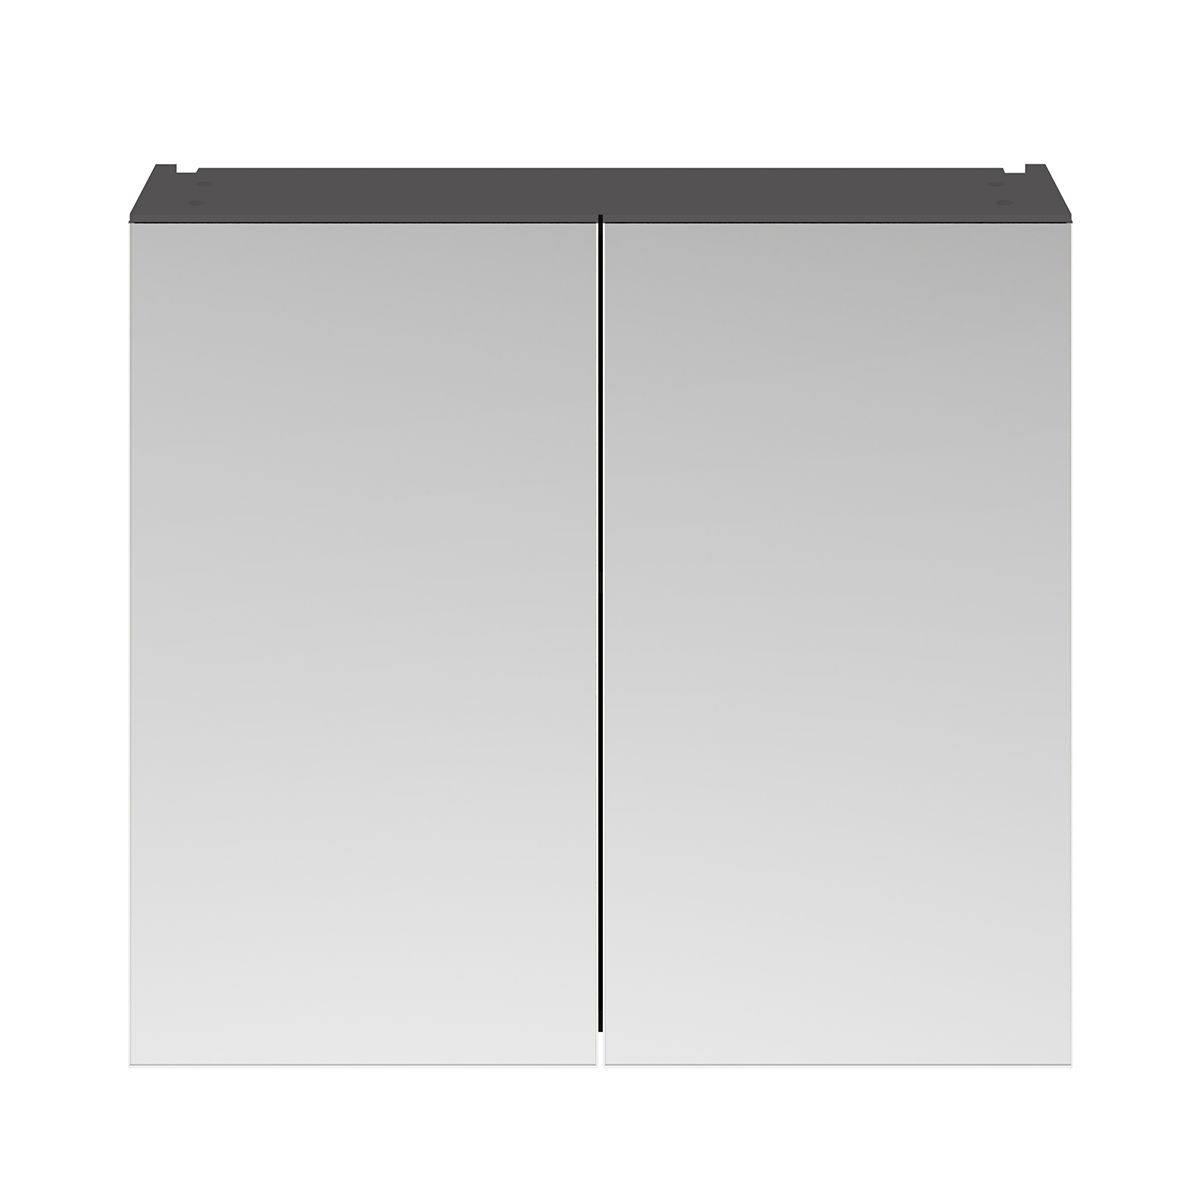 Nuie Athena Gloss Grey Double Mirrored Bathroom Cabinet 800mm